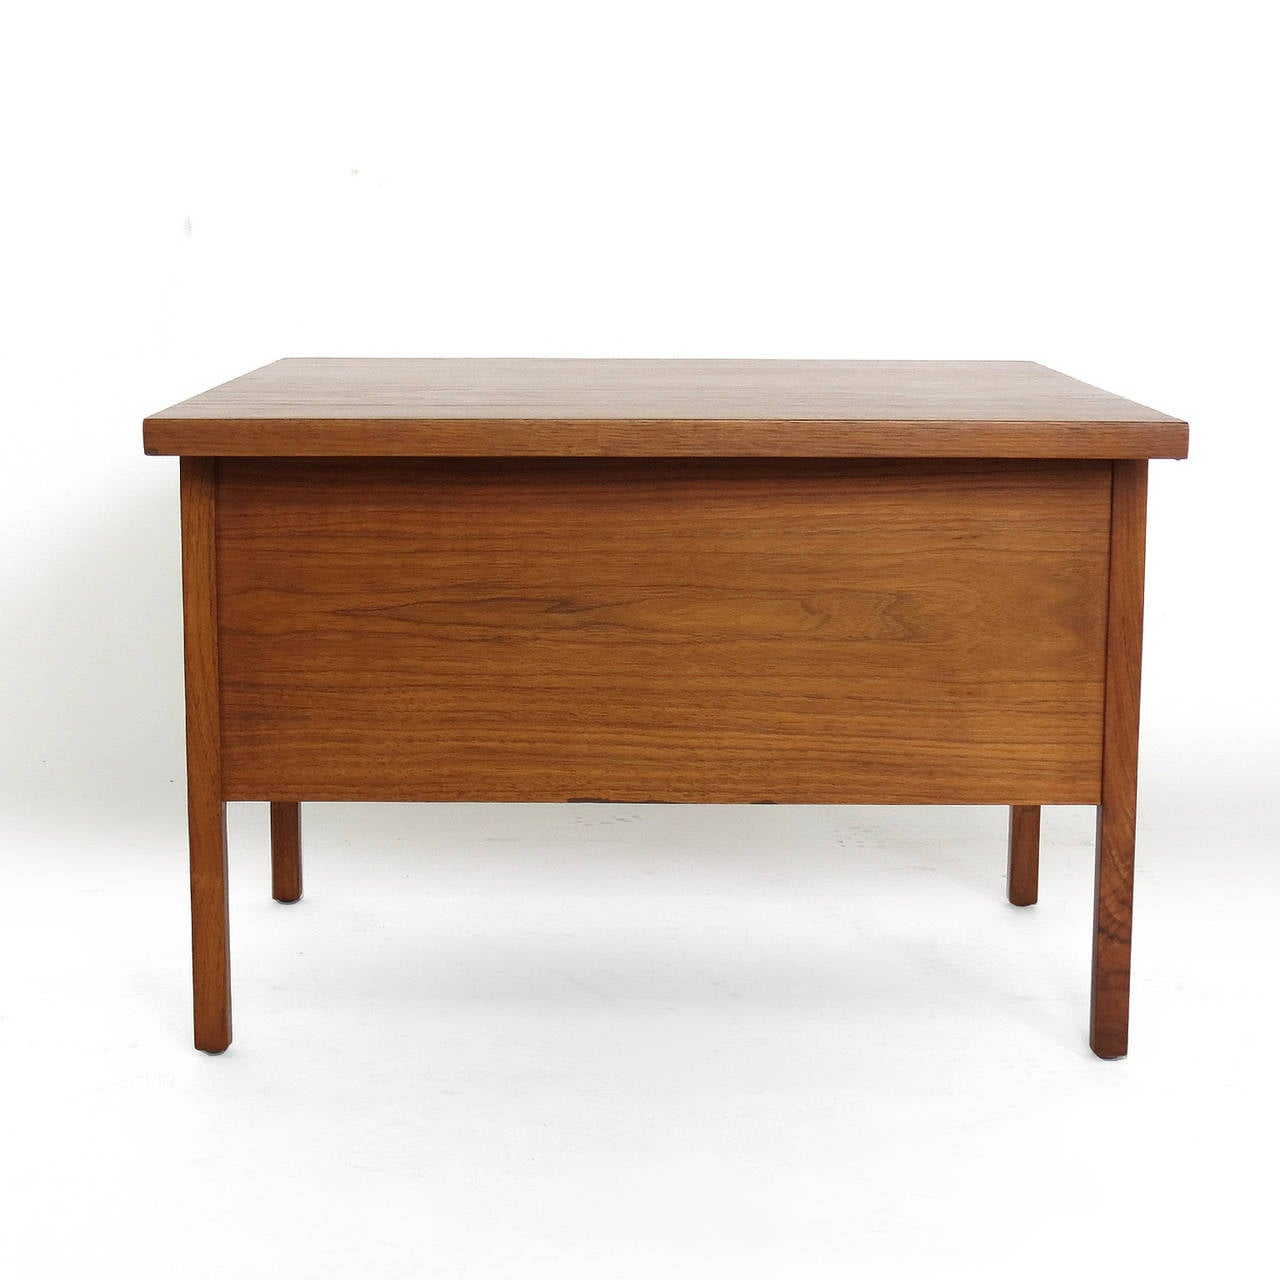 John Keal Coffee Table With Folding Side Tables For Sale At 1stdibs